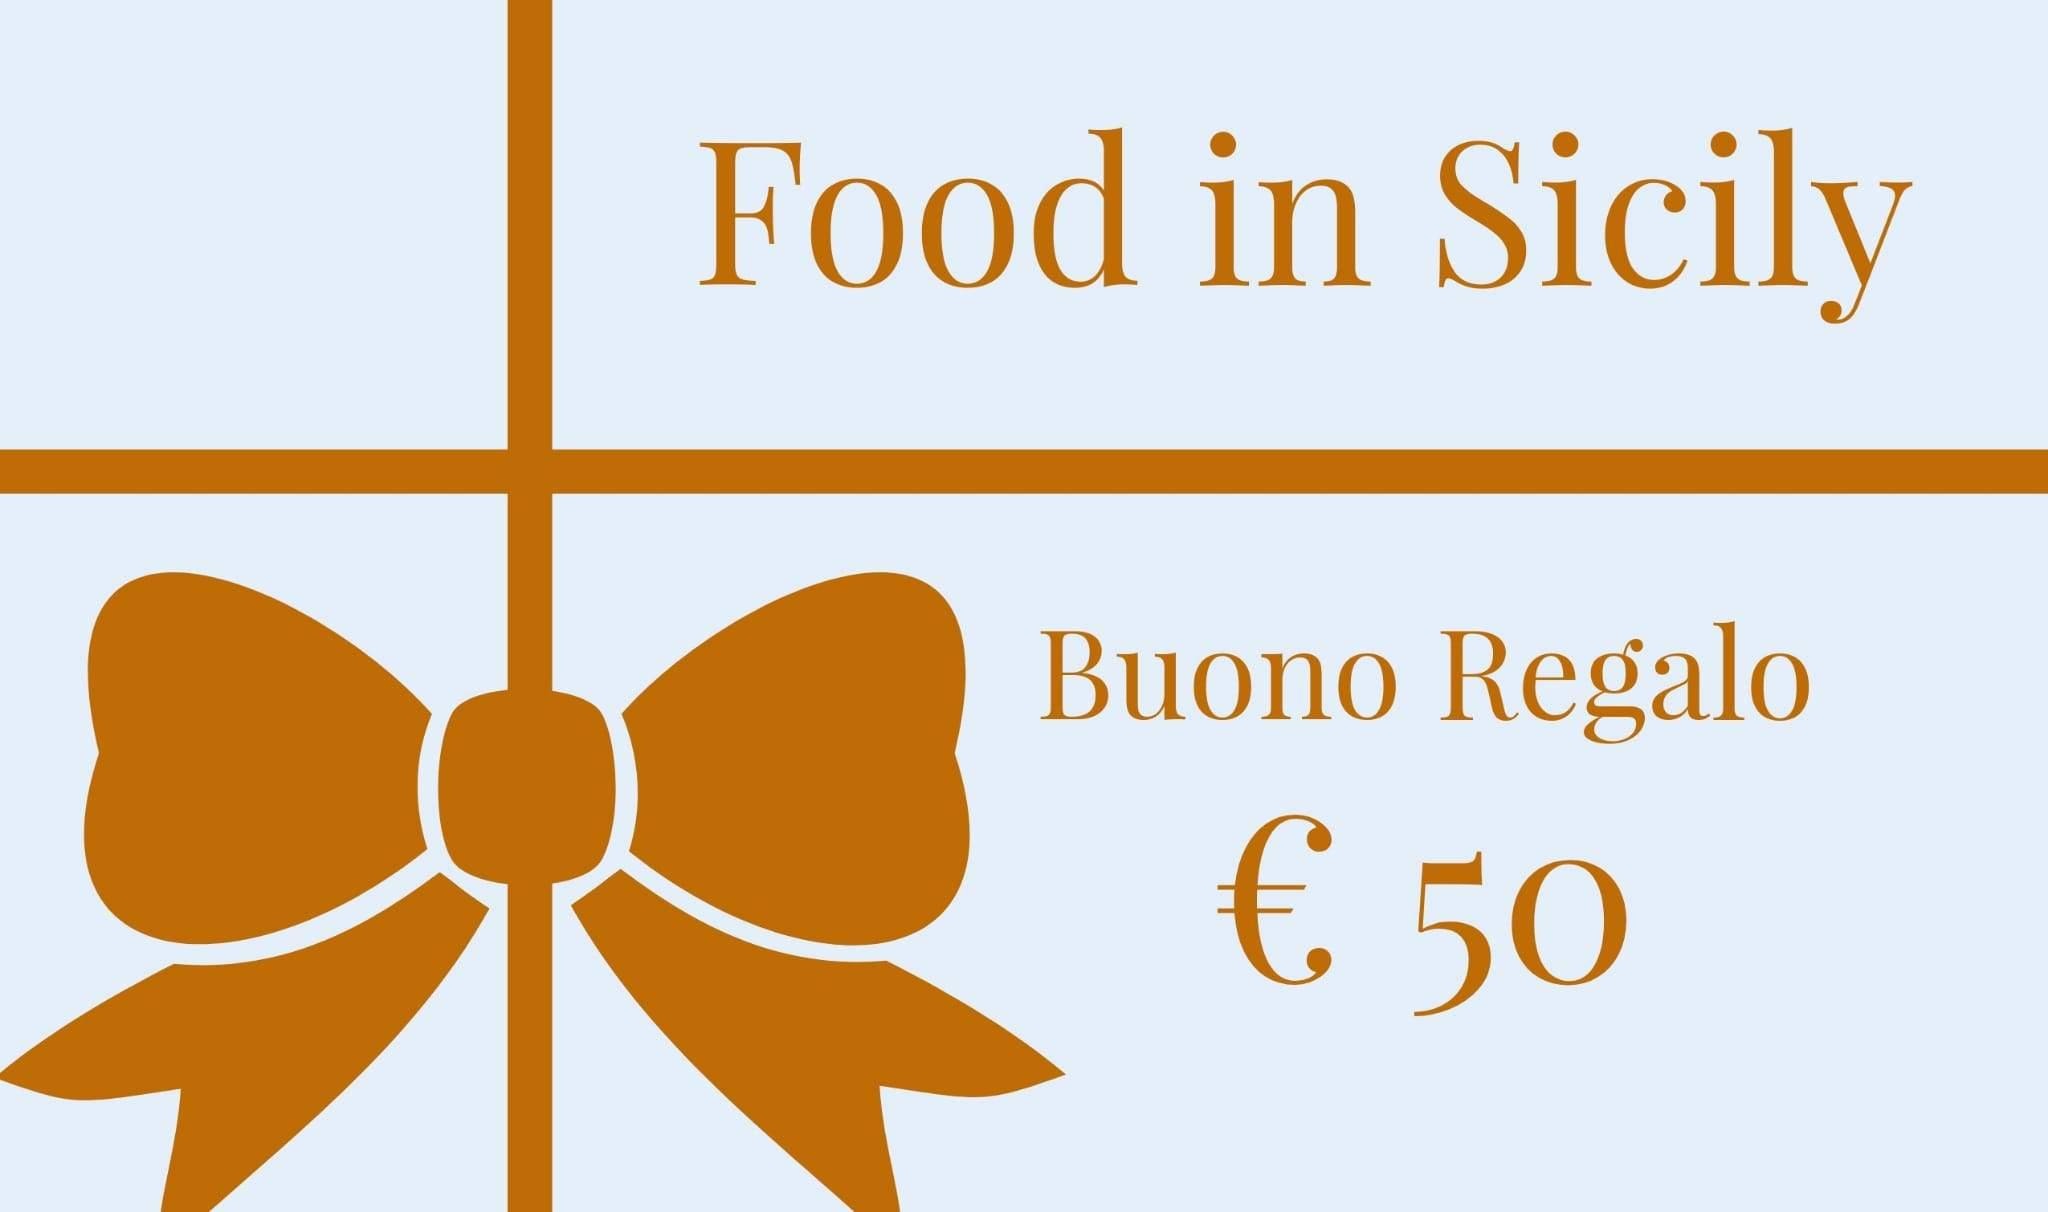 Buono Regalo Food in Sicily - Food in Sicily